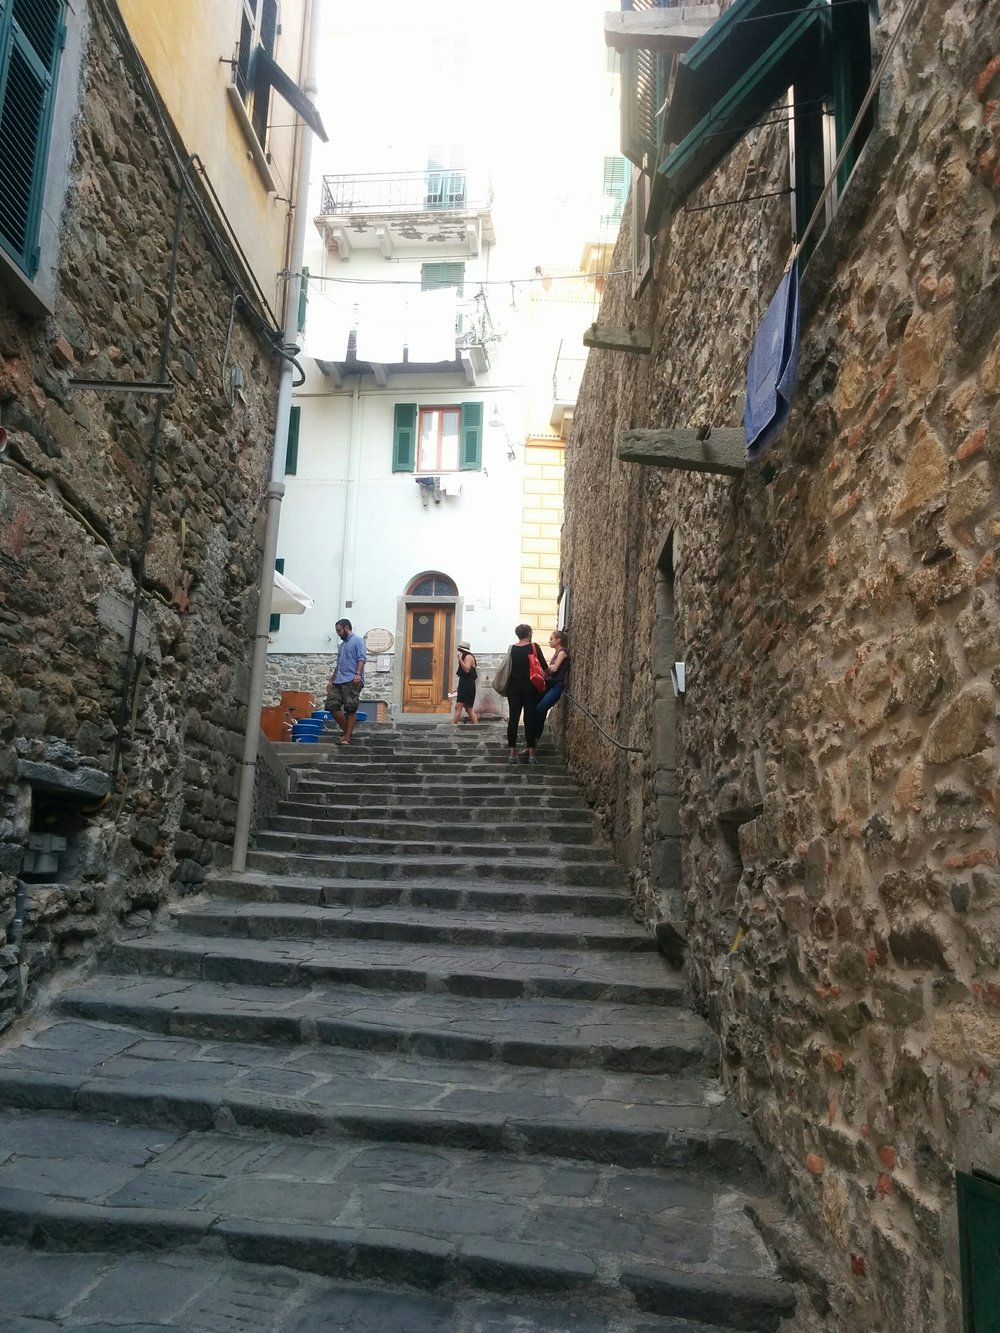 Stairs, stairs, everywhere. These led up to our airbnb. Our room is on the 2nd floor with green shutters and our clean (sink-washed) laundry drying in the wind.